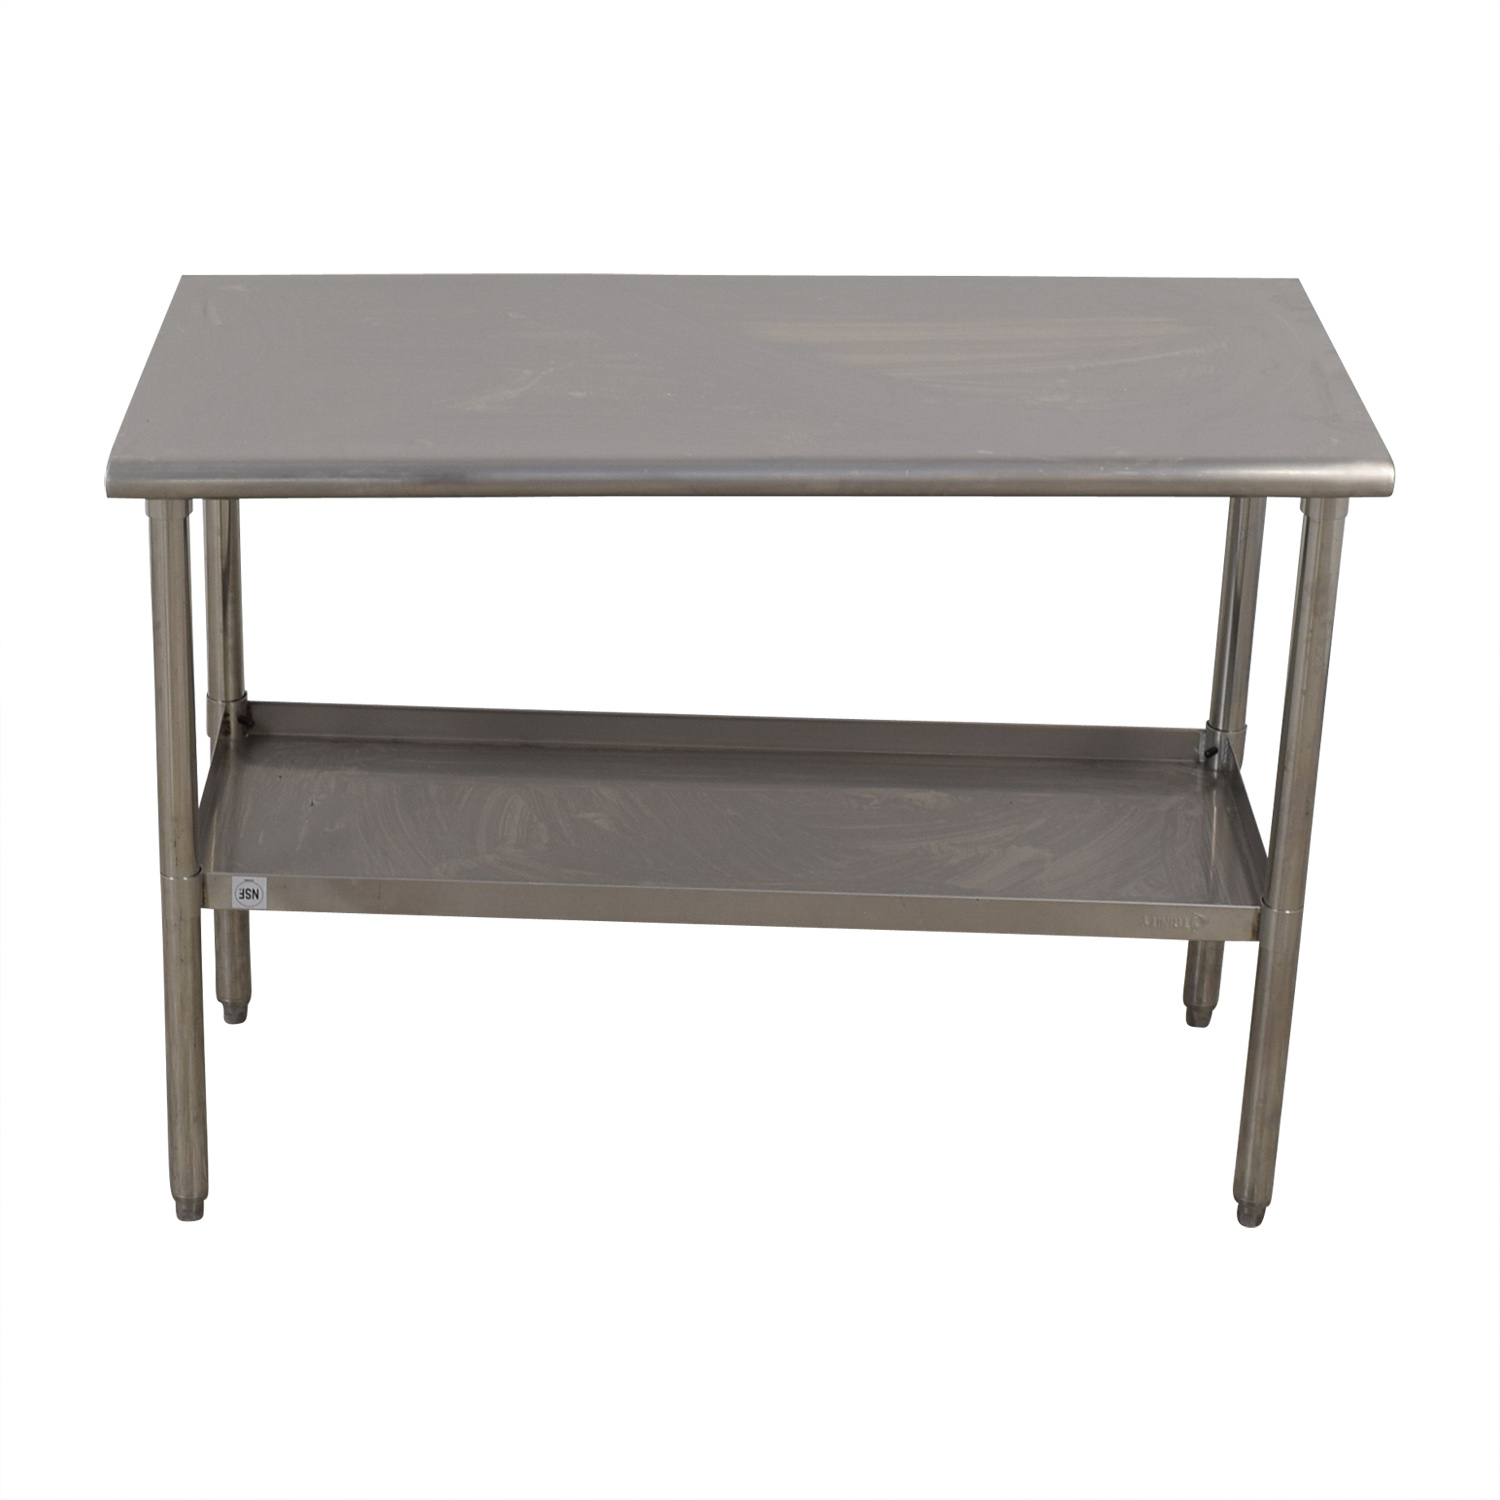 shop NSF Stainless Preparation Two-Tier Table